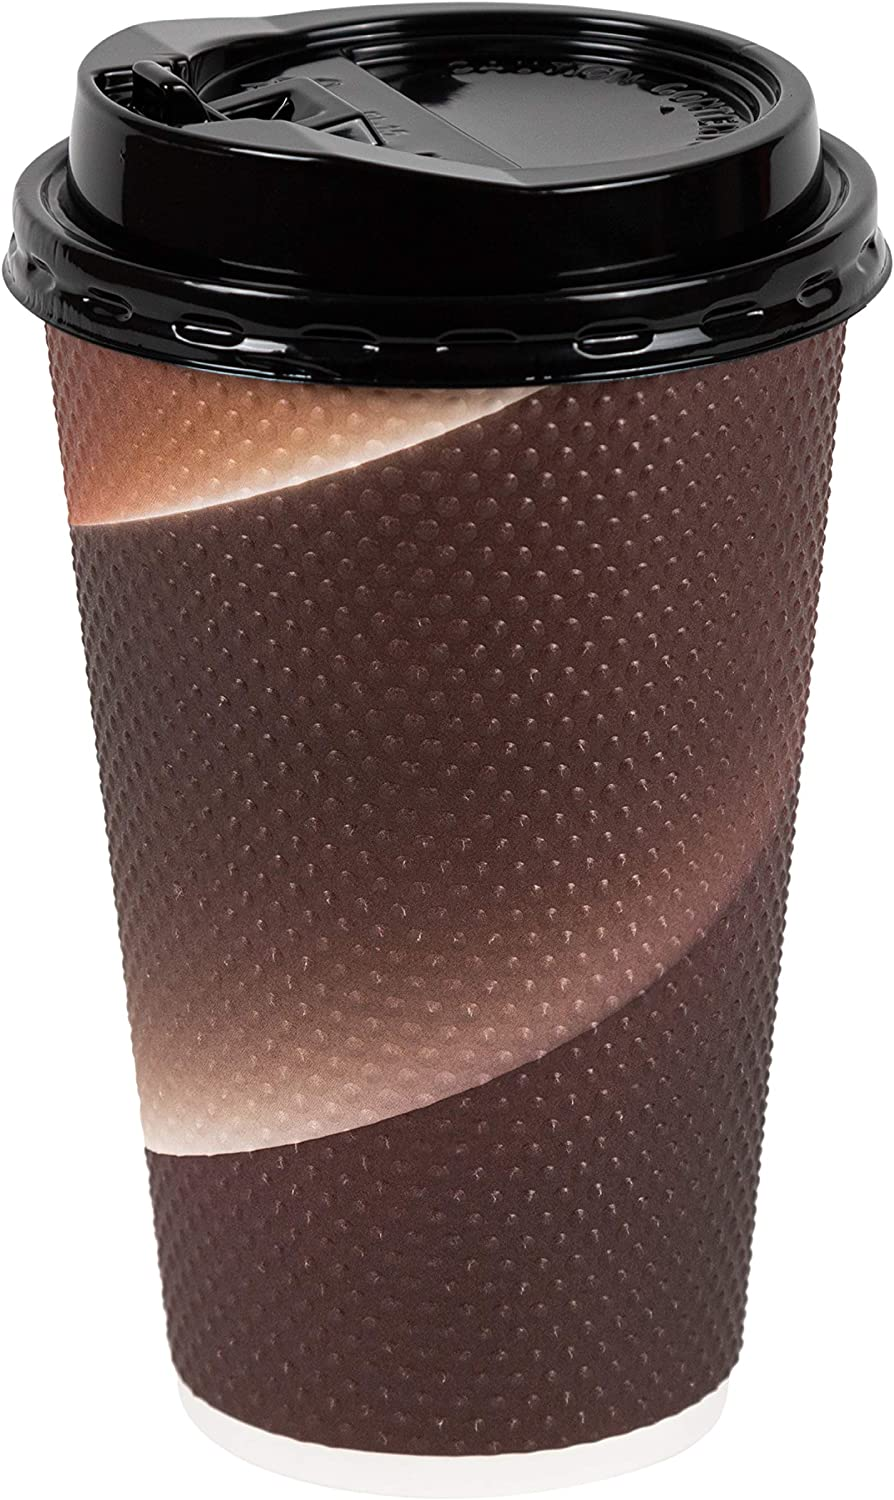 [32 Sets - 16 oz.] Insulated Textured Double Wall Paper Hot Coffee Cups With Lids, Brown